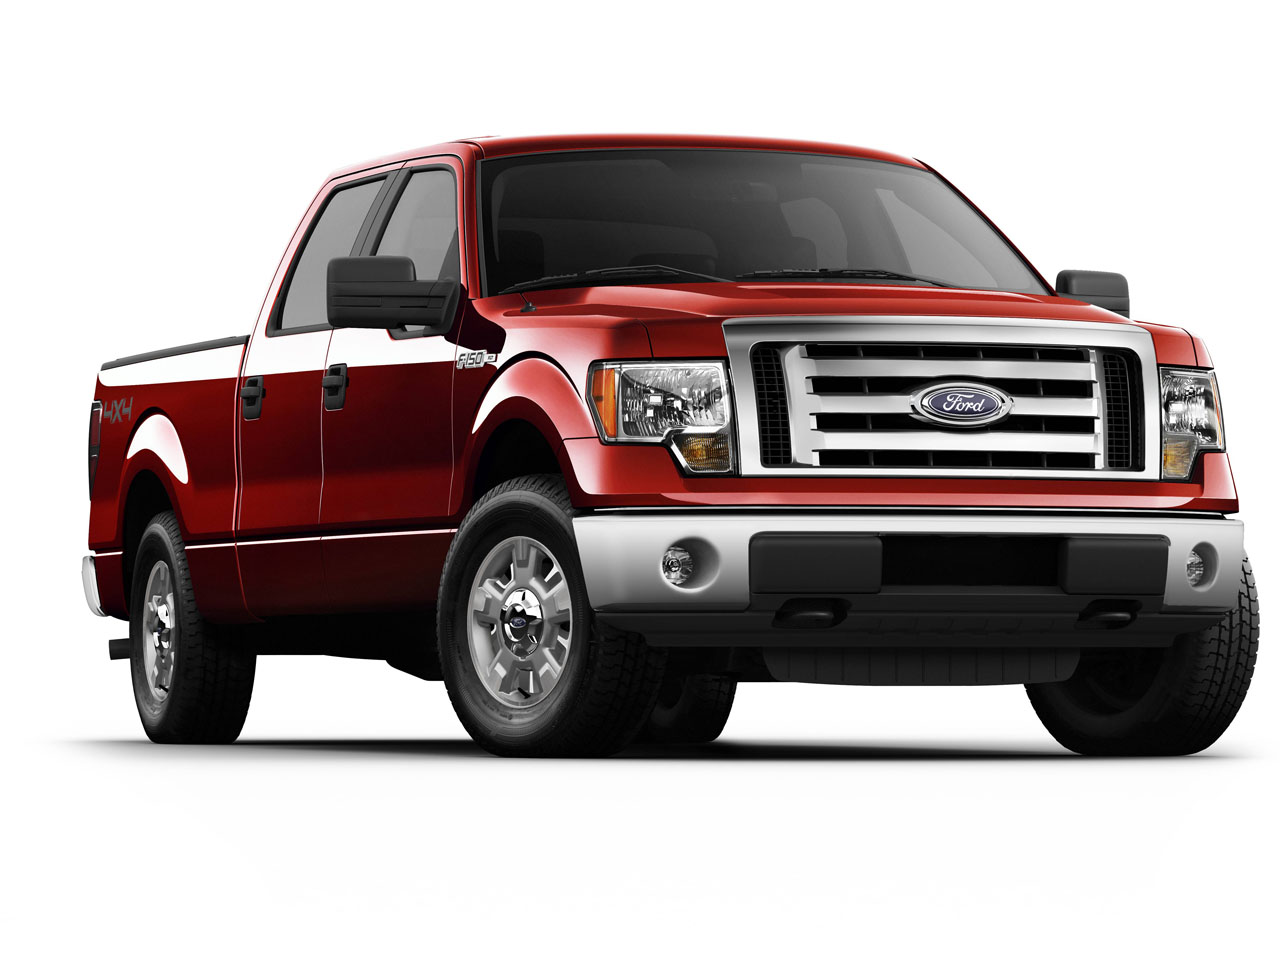 Used Trucks Houston >> 2011 Ford F-150 Buyer's Guide: Which Truck Is For Me?